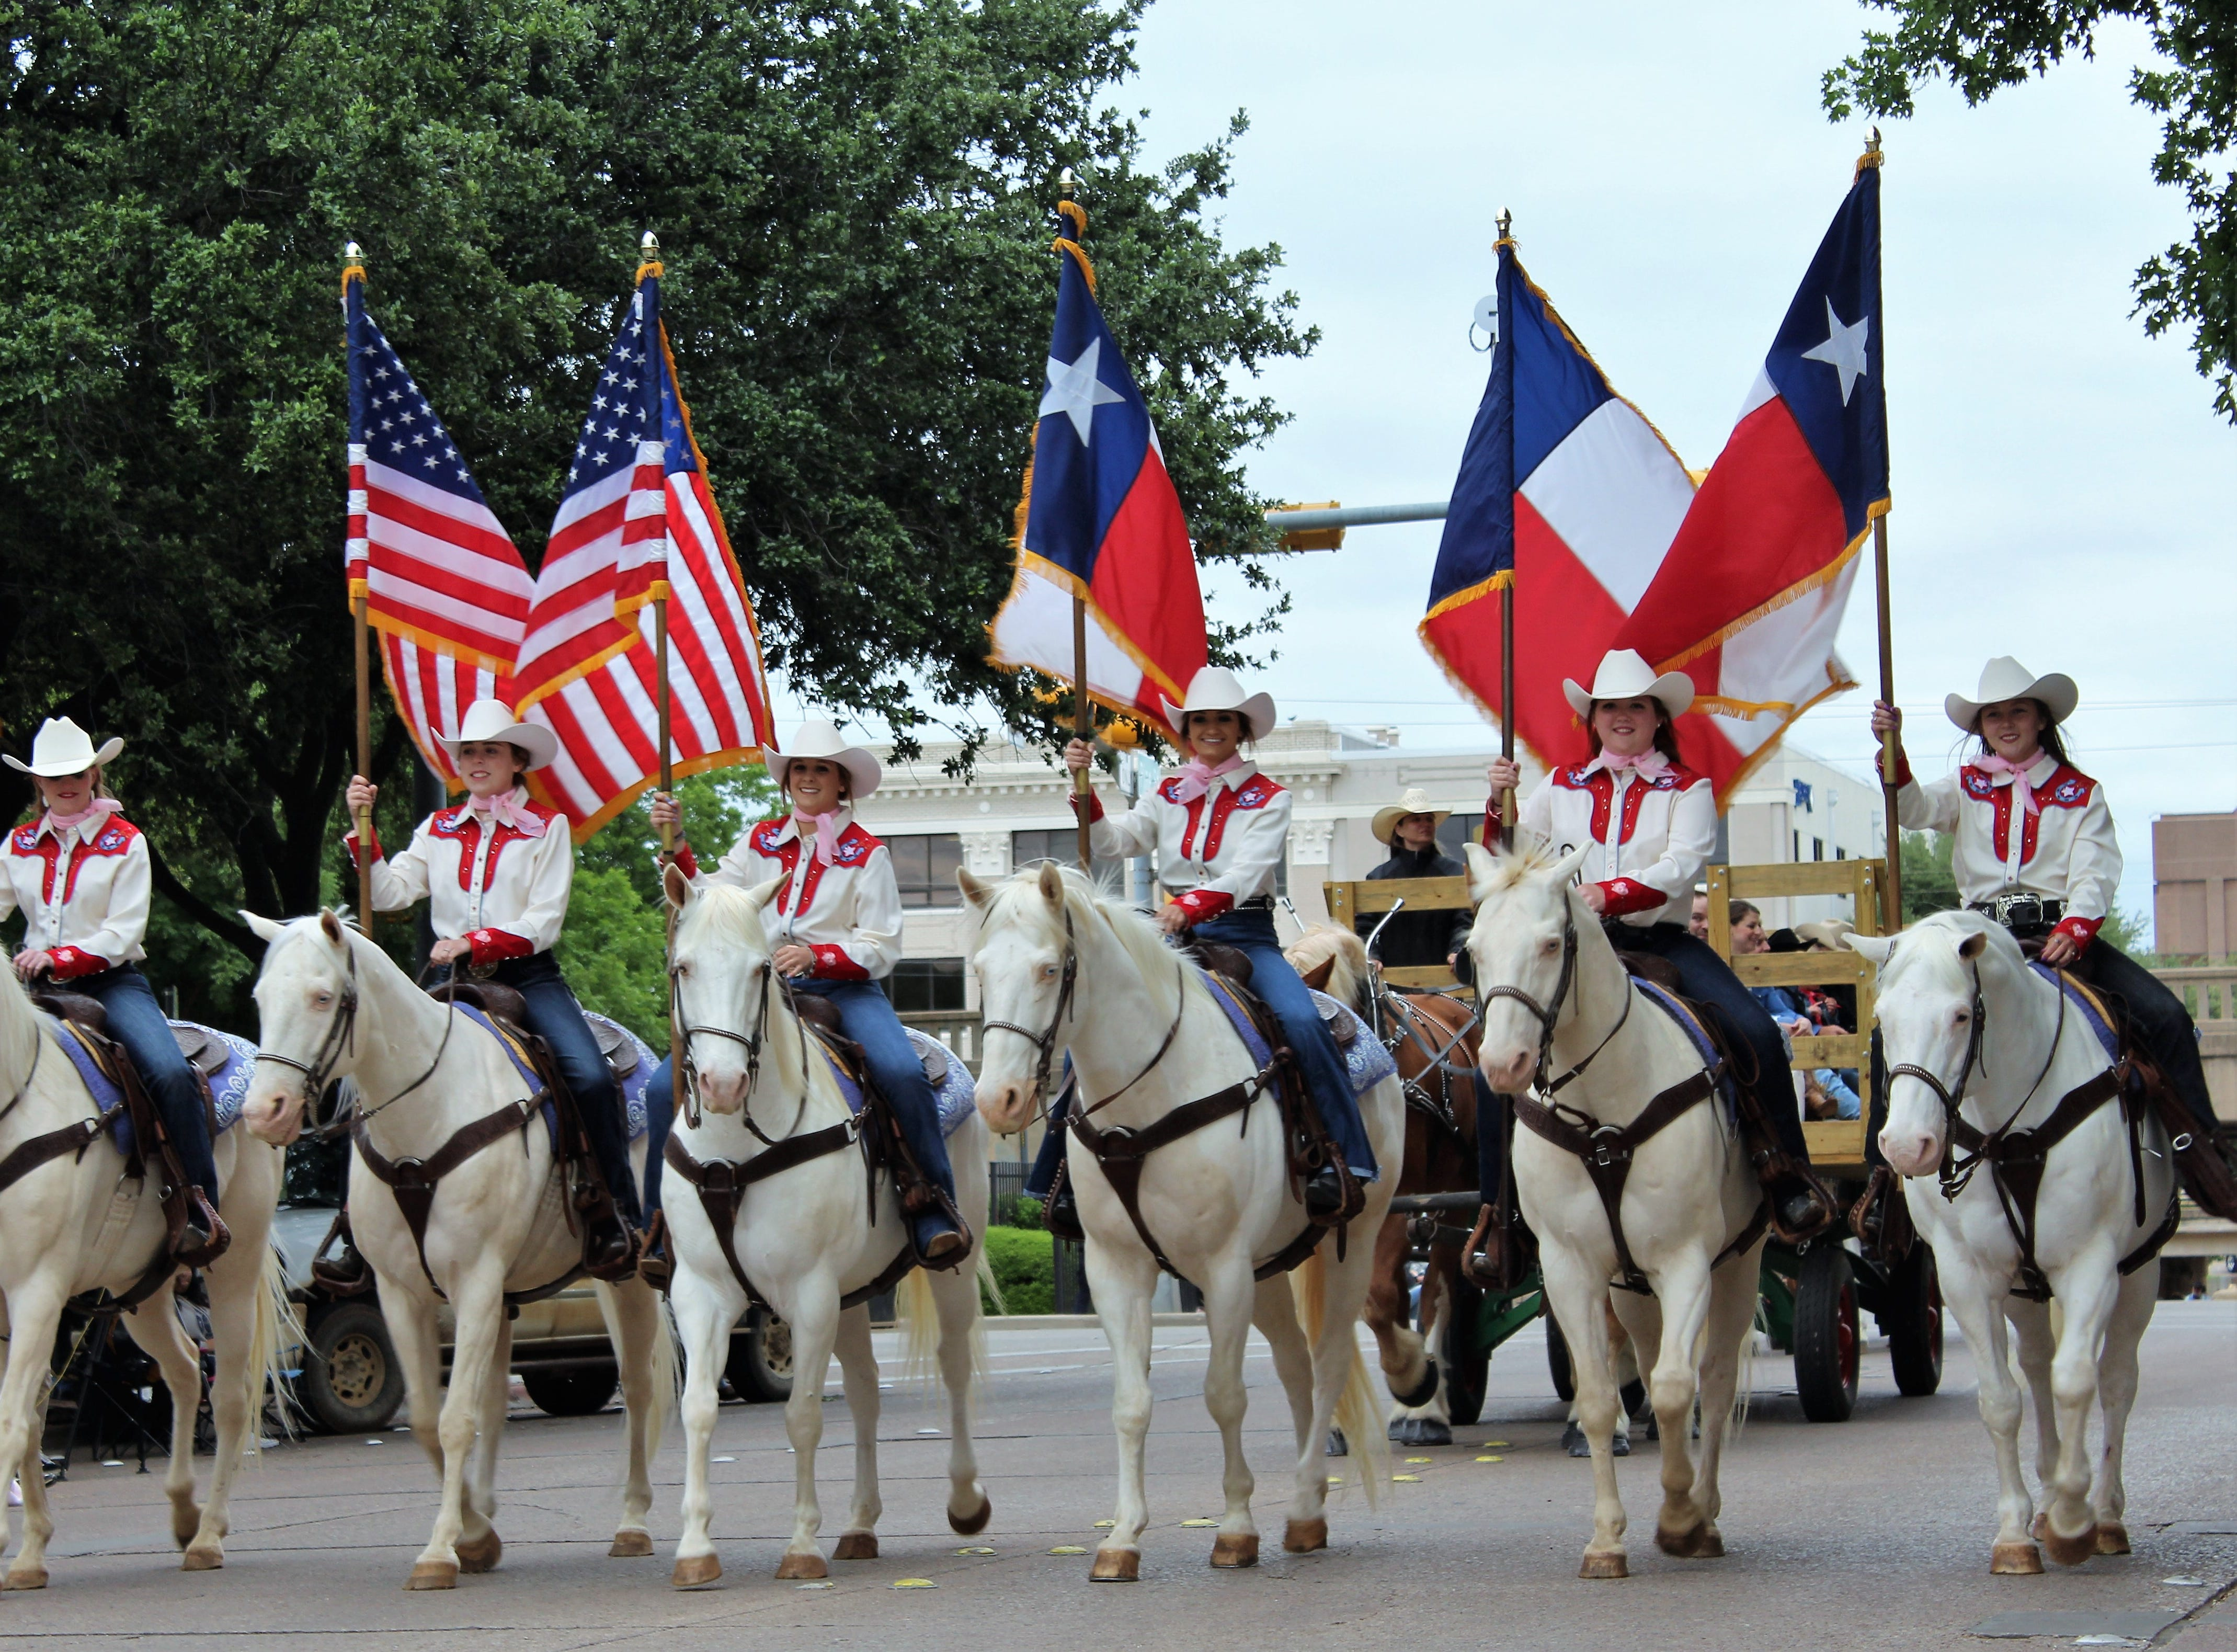 The annual Western Heritage Classic parade is not complete without the Six White Horses of Hardin-Simmons University, seen marching side by side north on Pine Street on Thursday. May 9, 2019.